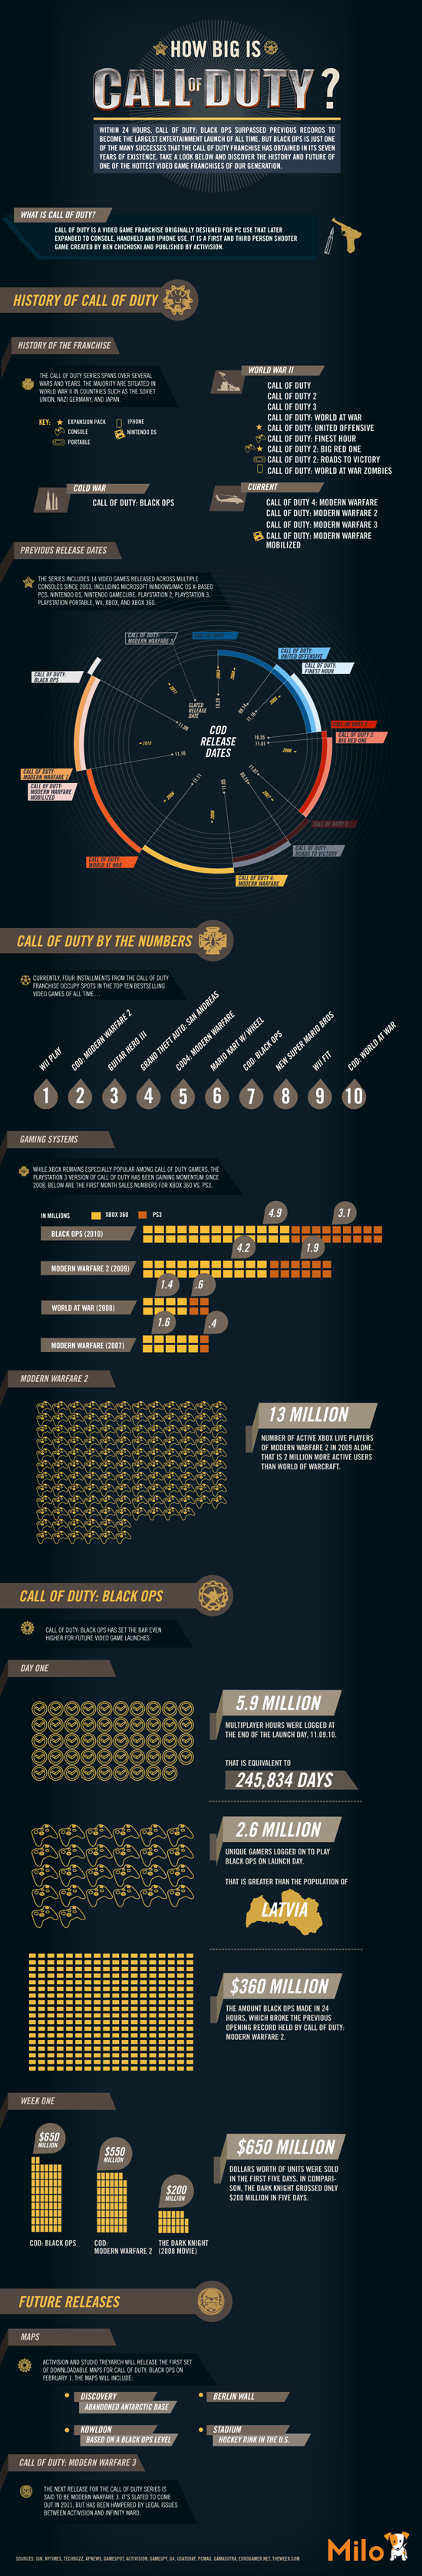 Infographique Call of Duty: C'est big!